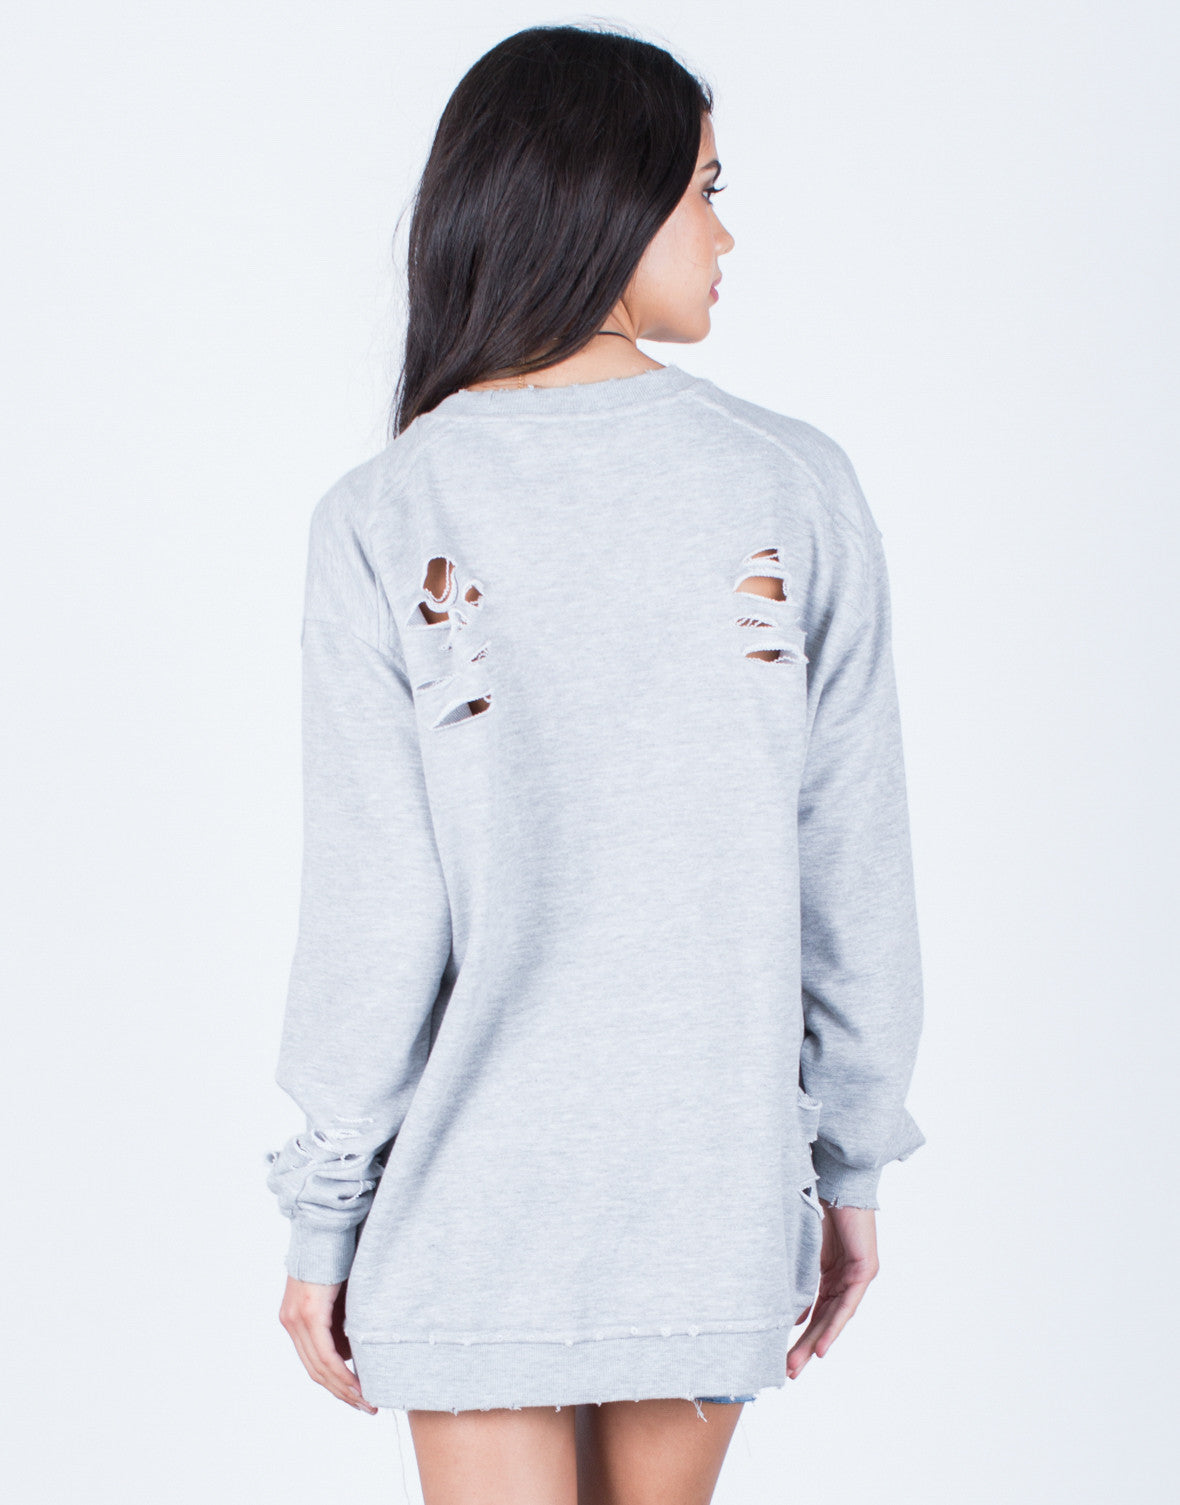 Back View of Oversized Destroyed Sweater